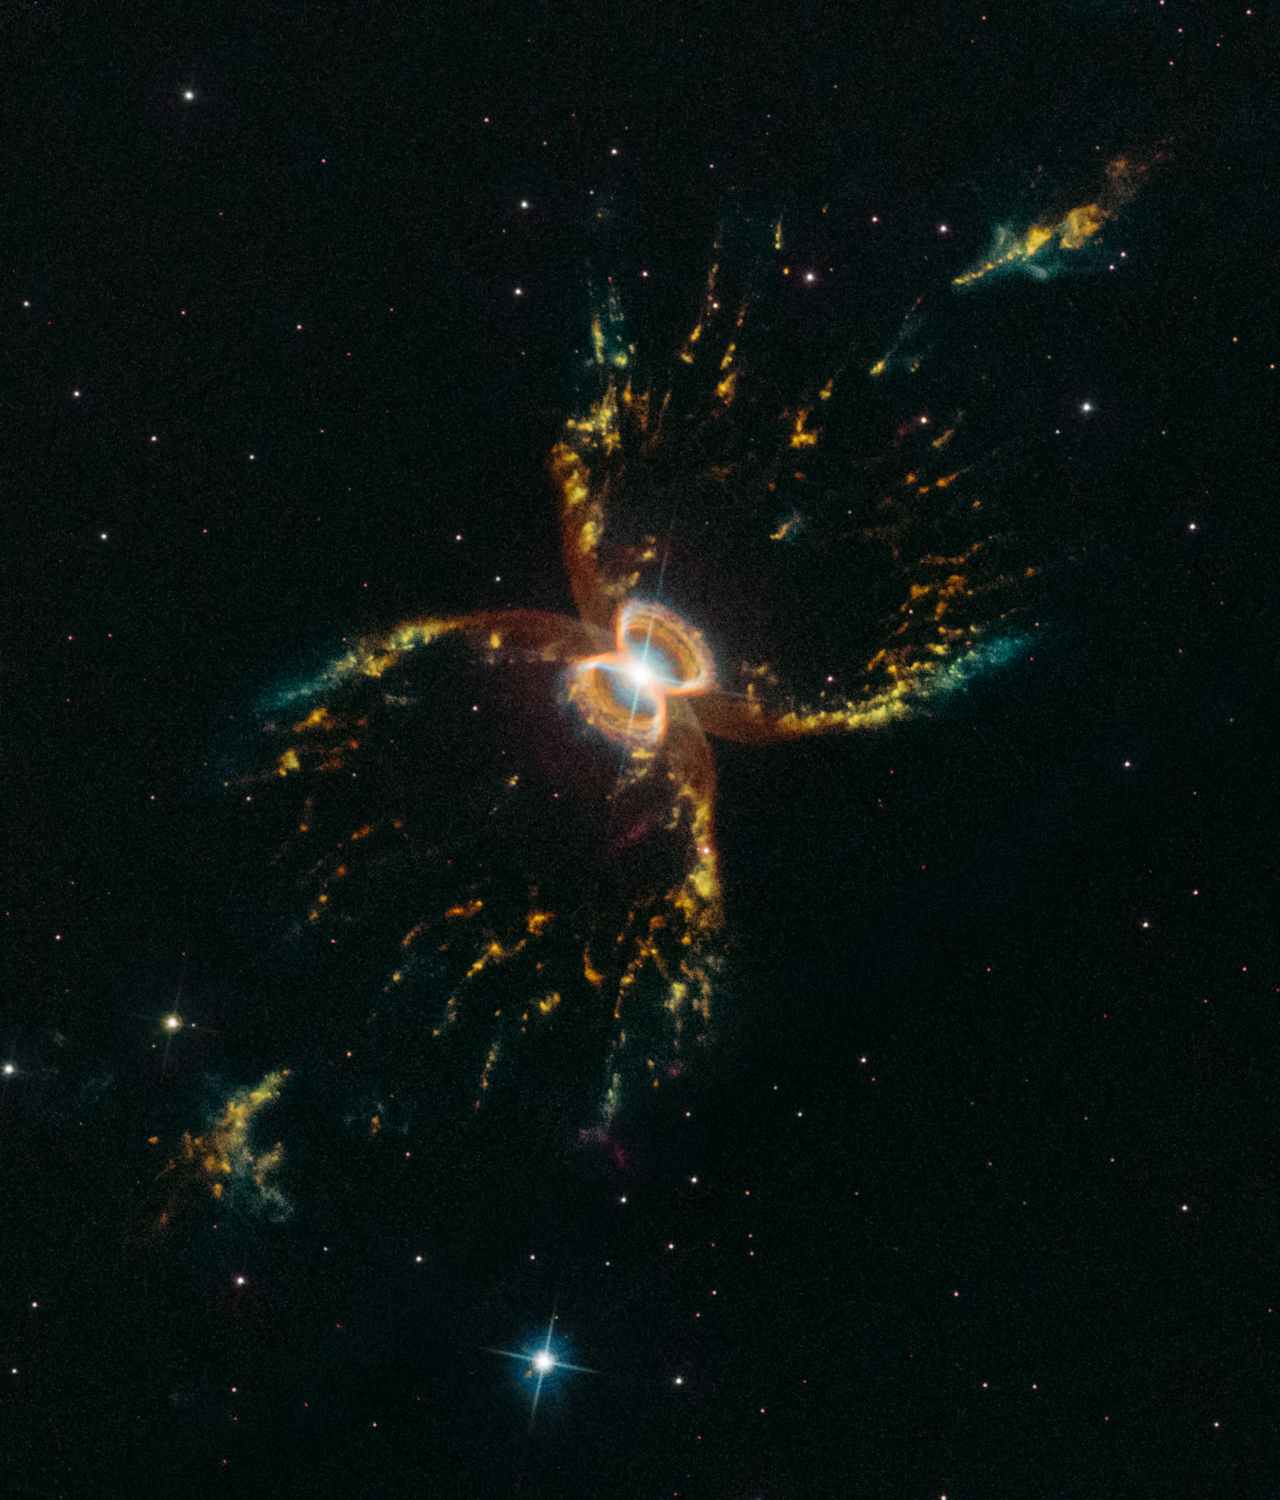 NASAs Hubble takes beautiful image of Southern Crab nebula to celebrate turning 29